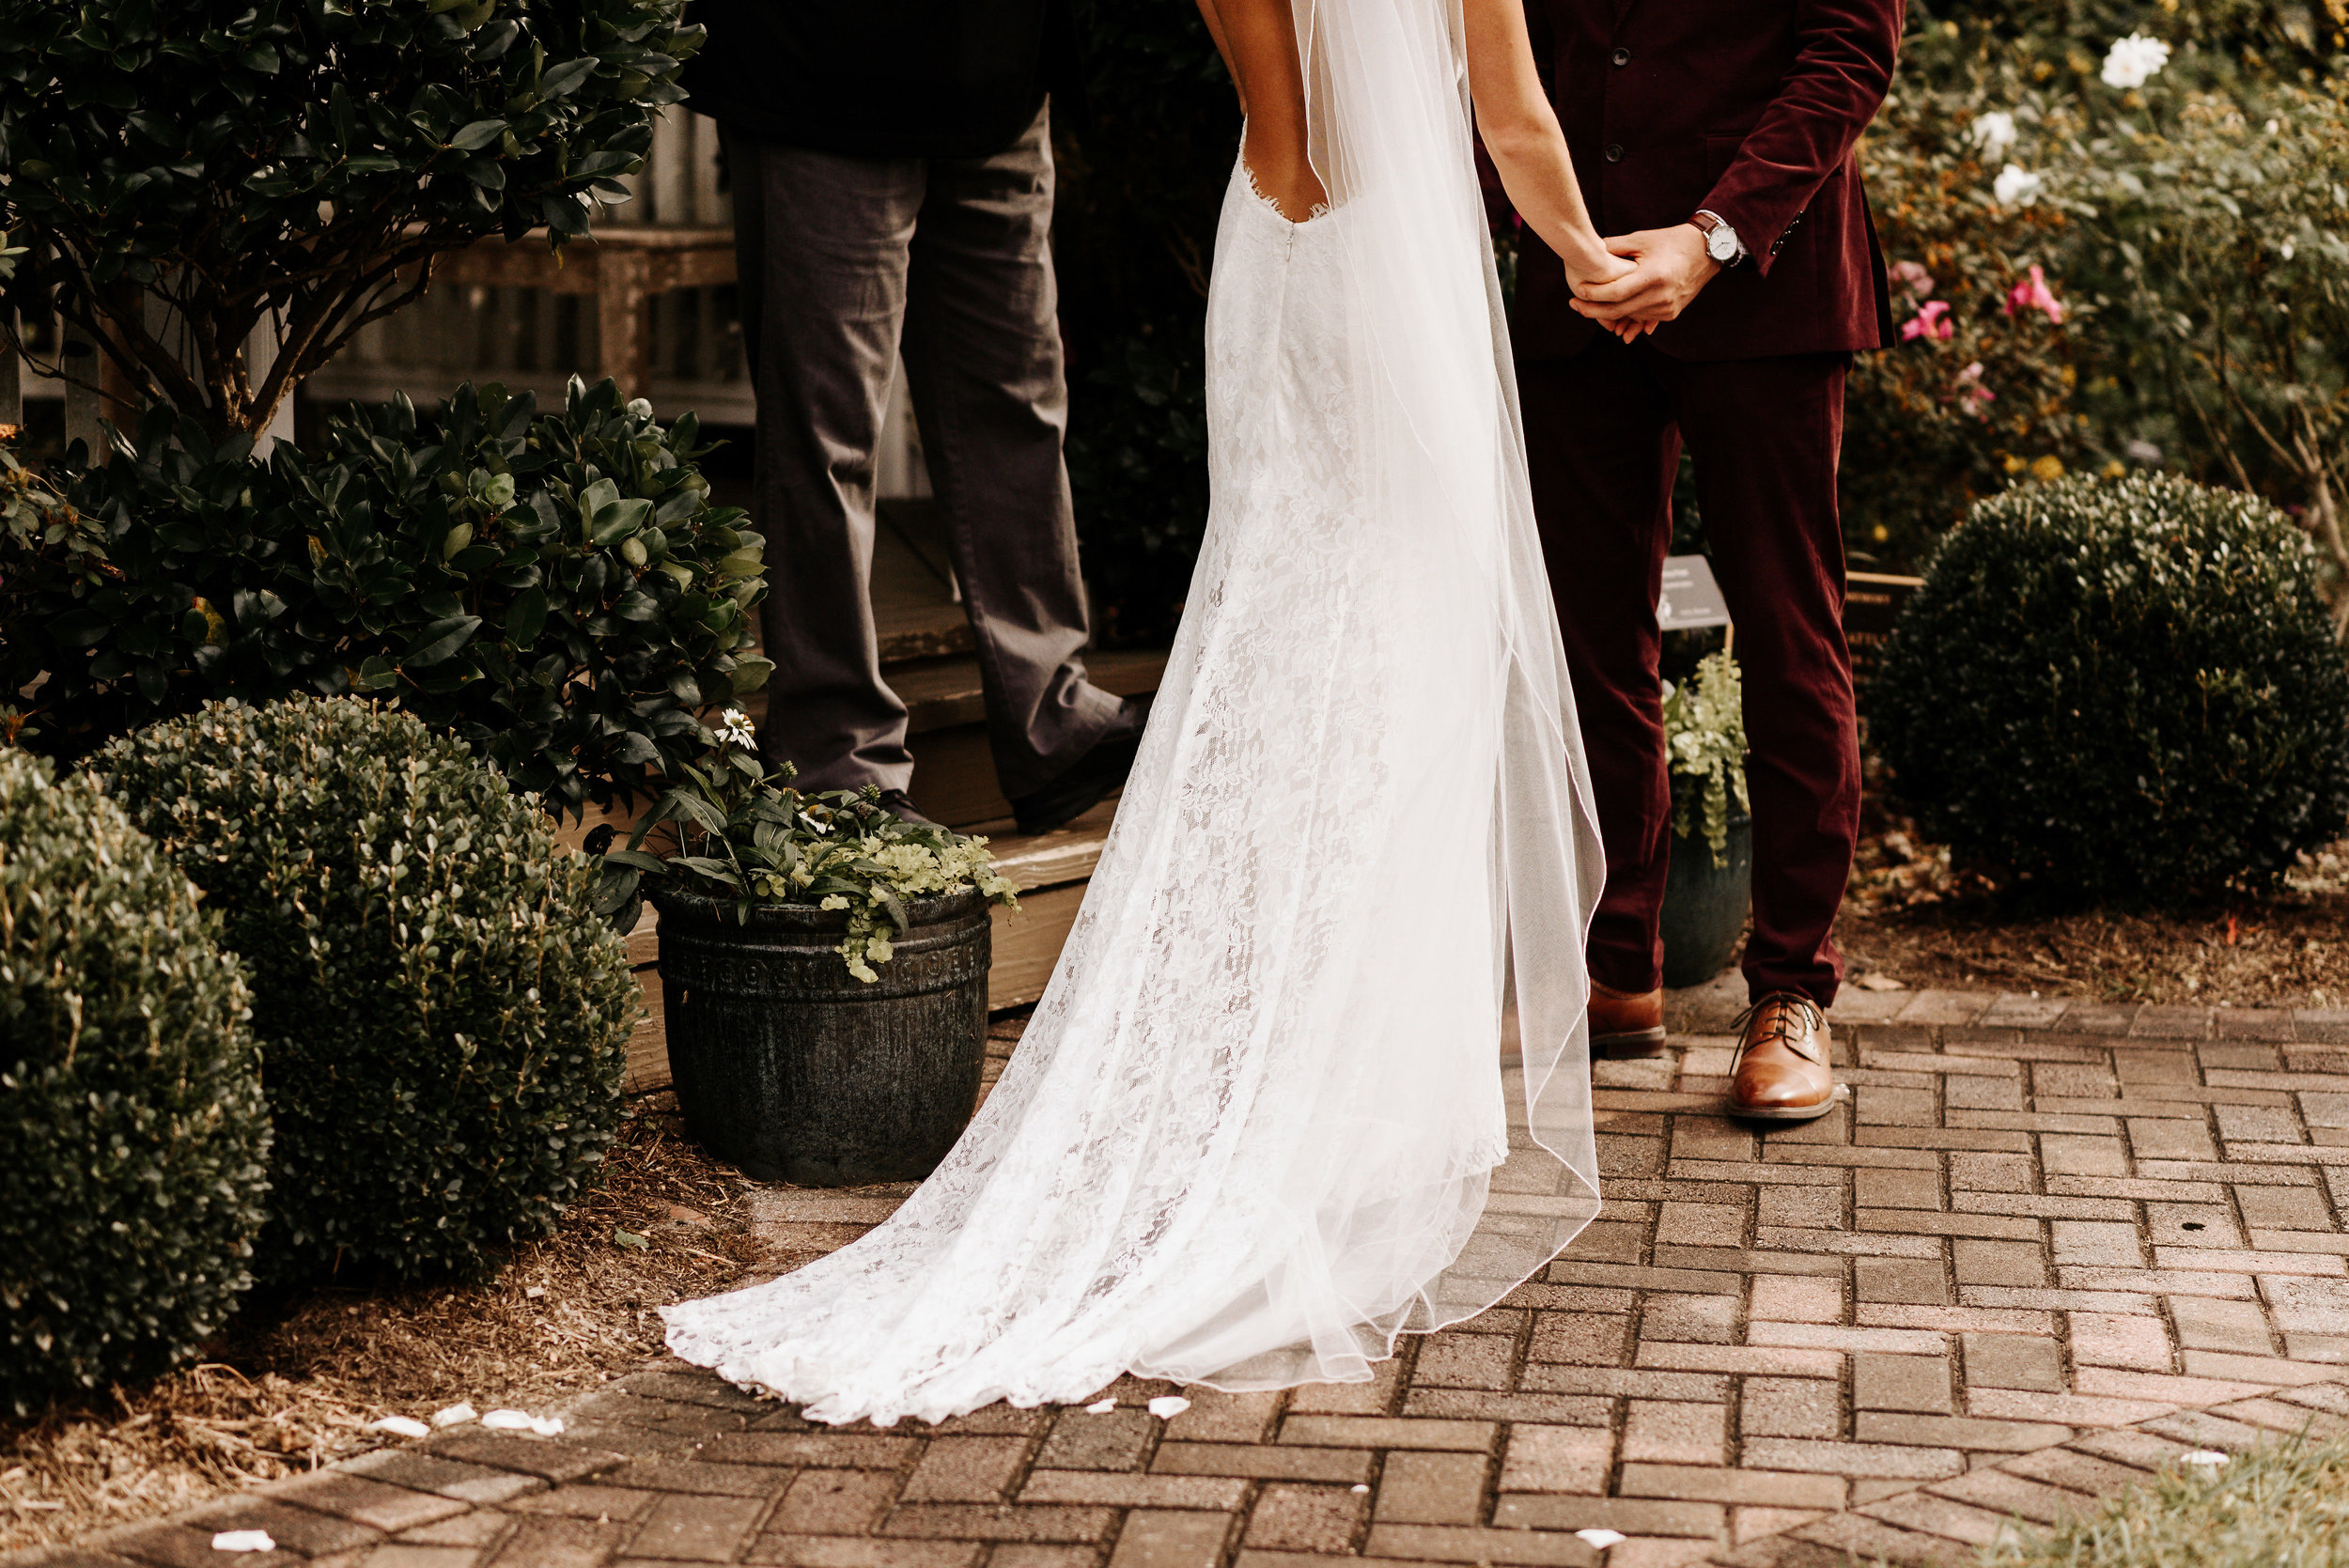 Kourtney_Sean_Savannah_Georgia_Wedding_Wormsloe_Histroic_Site_Coastal_Georgia_Botanical_Gardens_Photography_by_V_6963.jpg